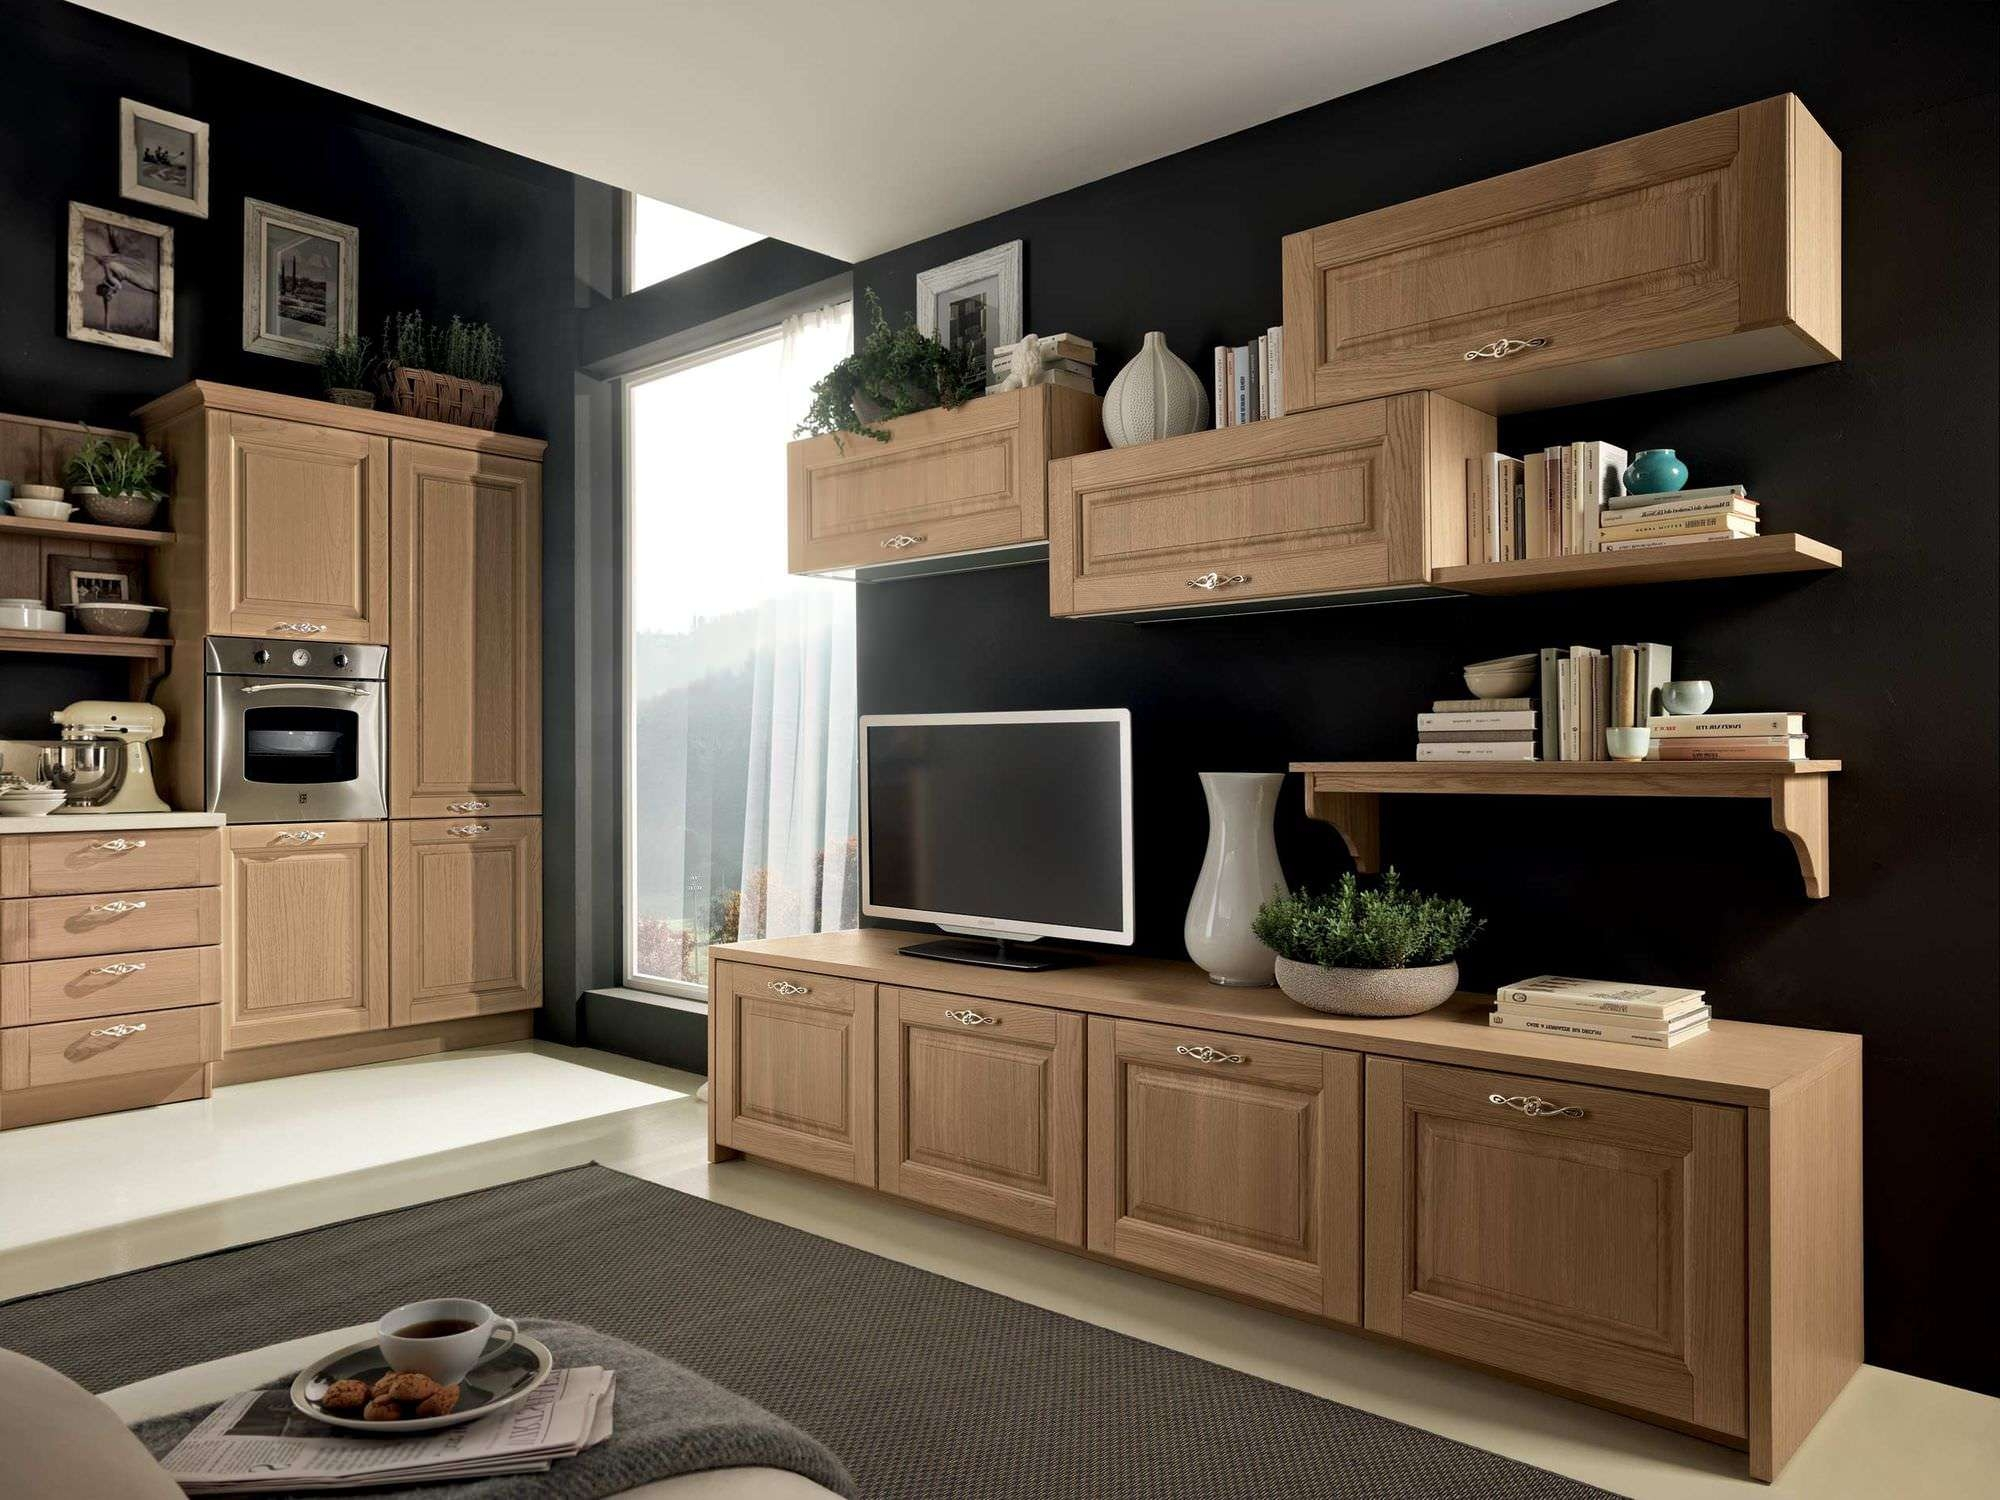 Traditional Tv Cabinet / Wooden – Bolgheri – Stosa Cucine Regarding Traditional Tv Cabinets (View 11 of 20)